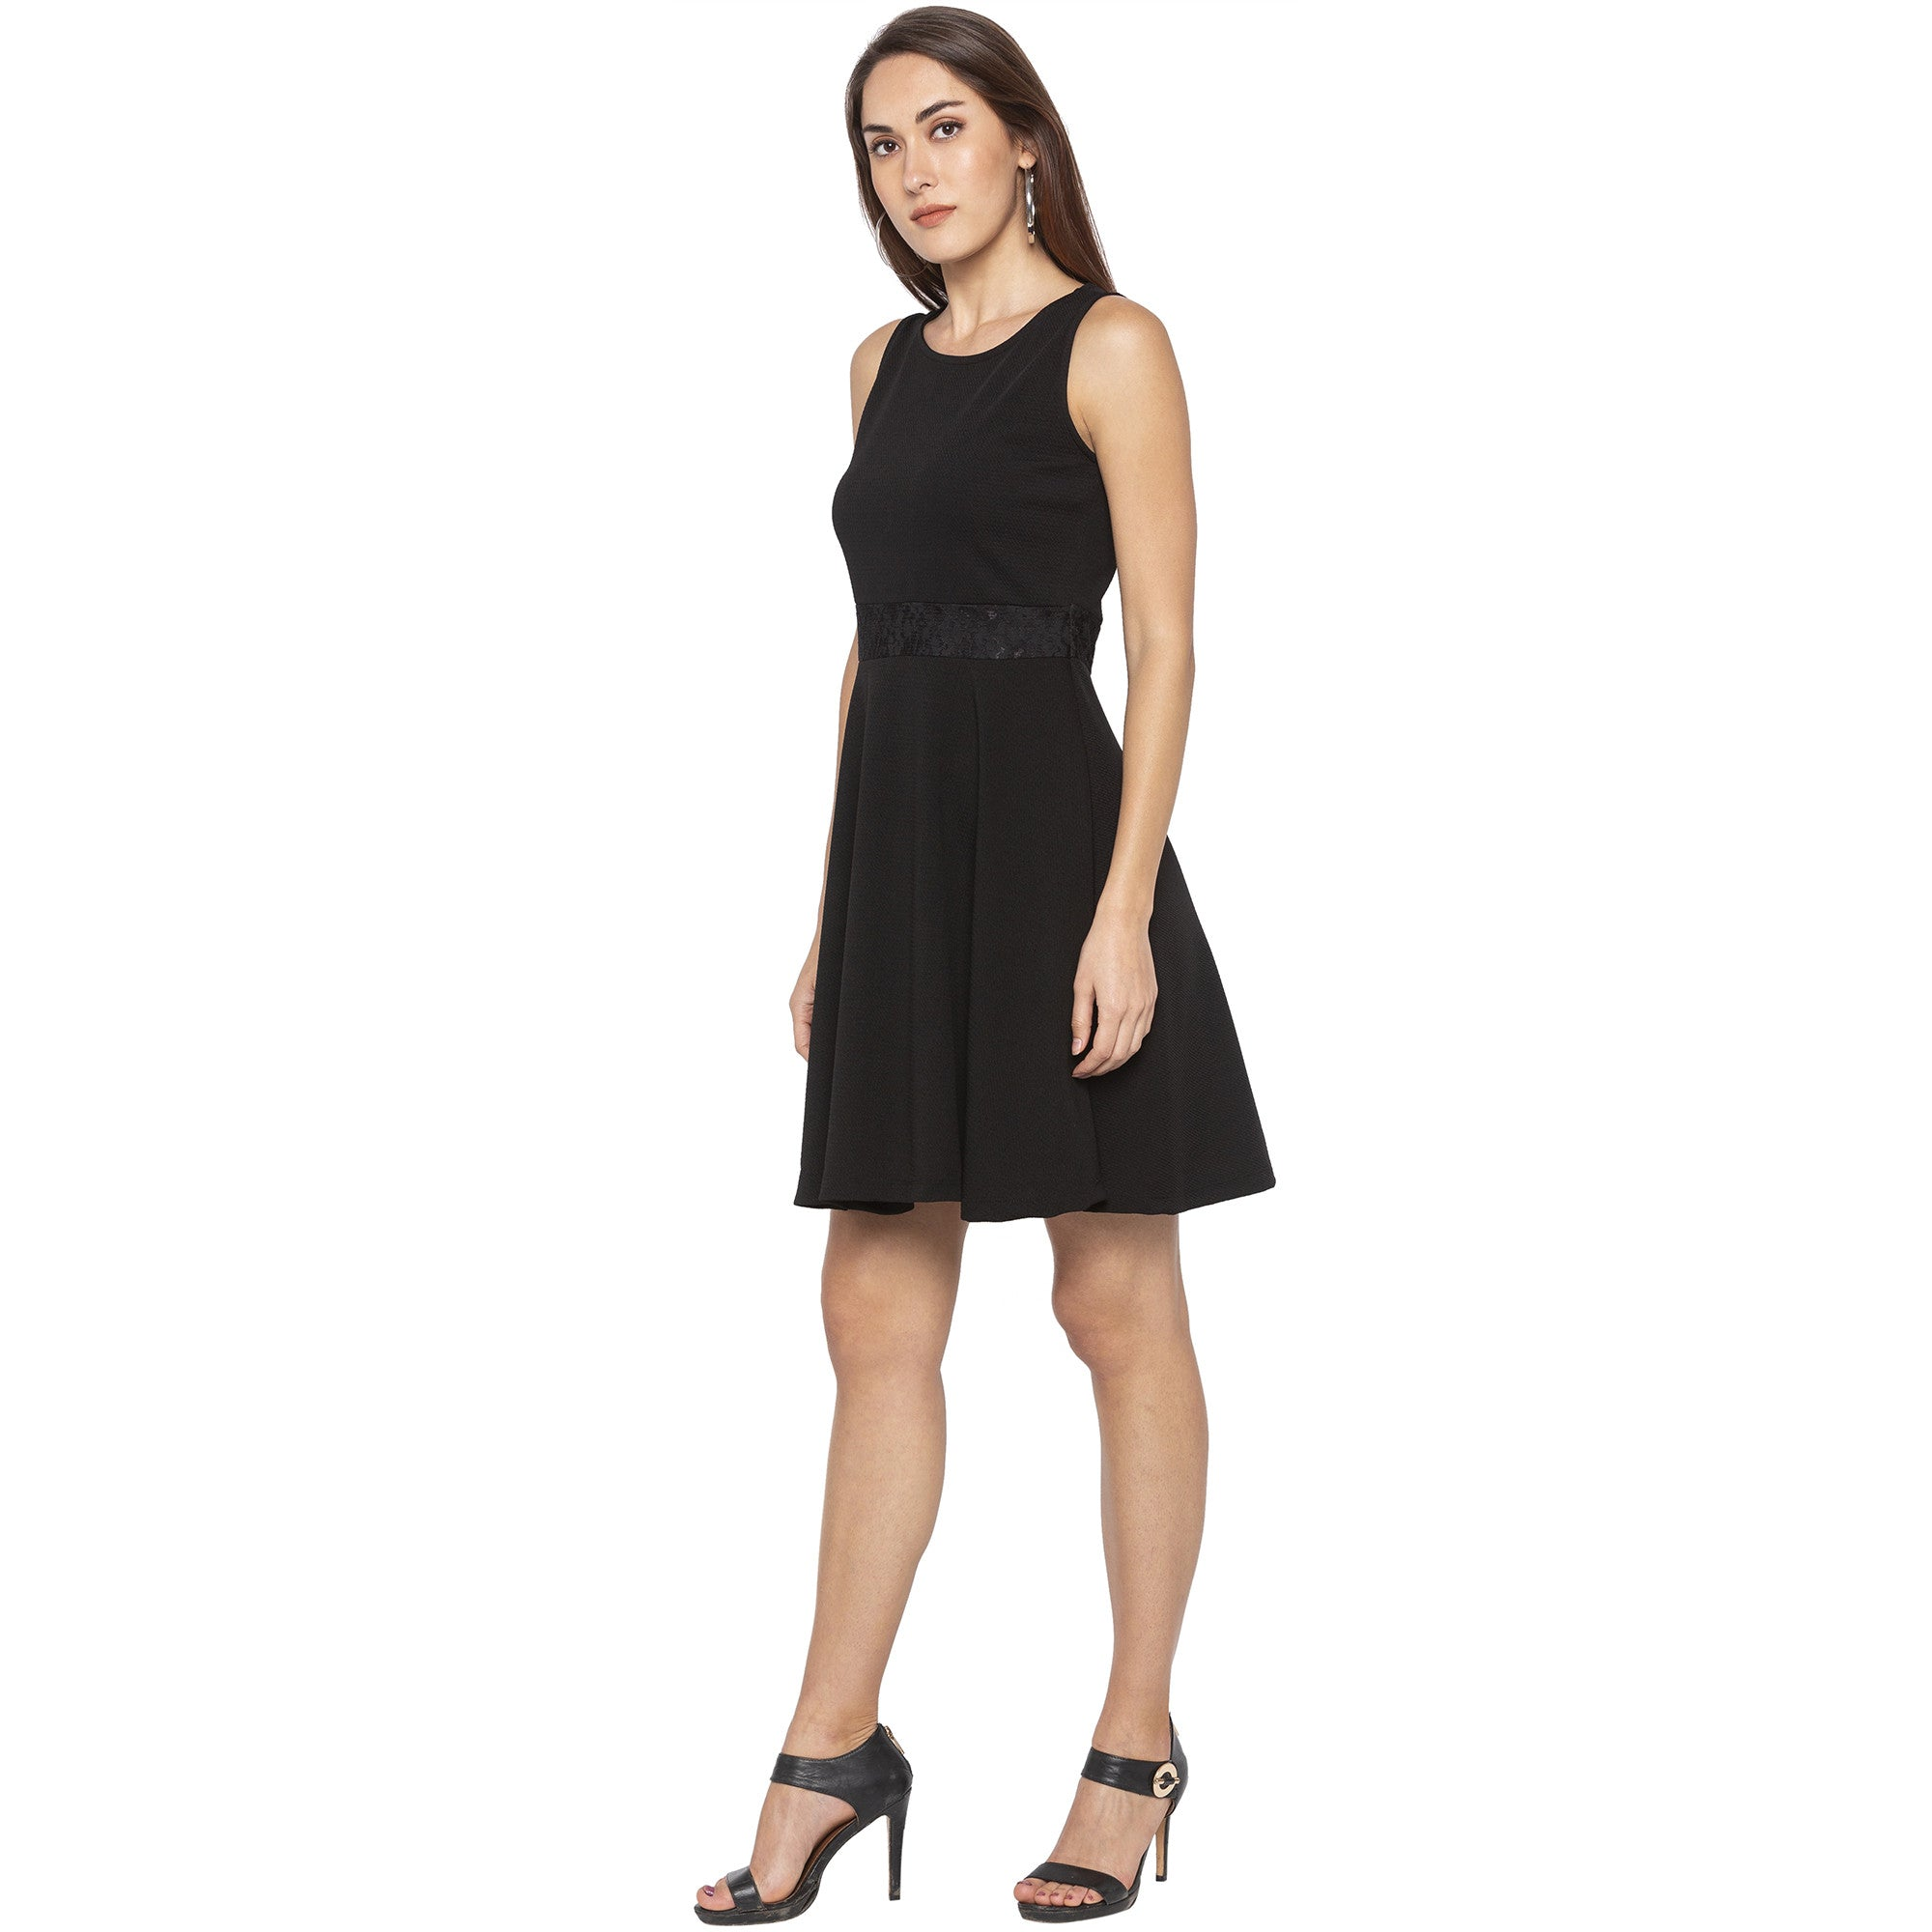 Casual Black Color Solid Fit and Flare Dress-2